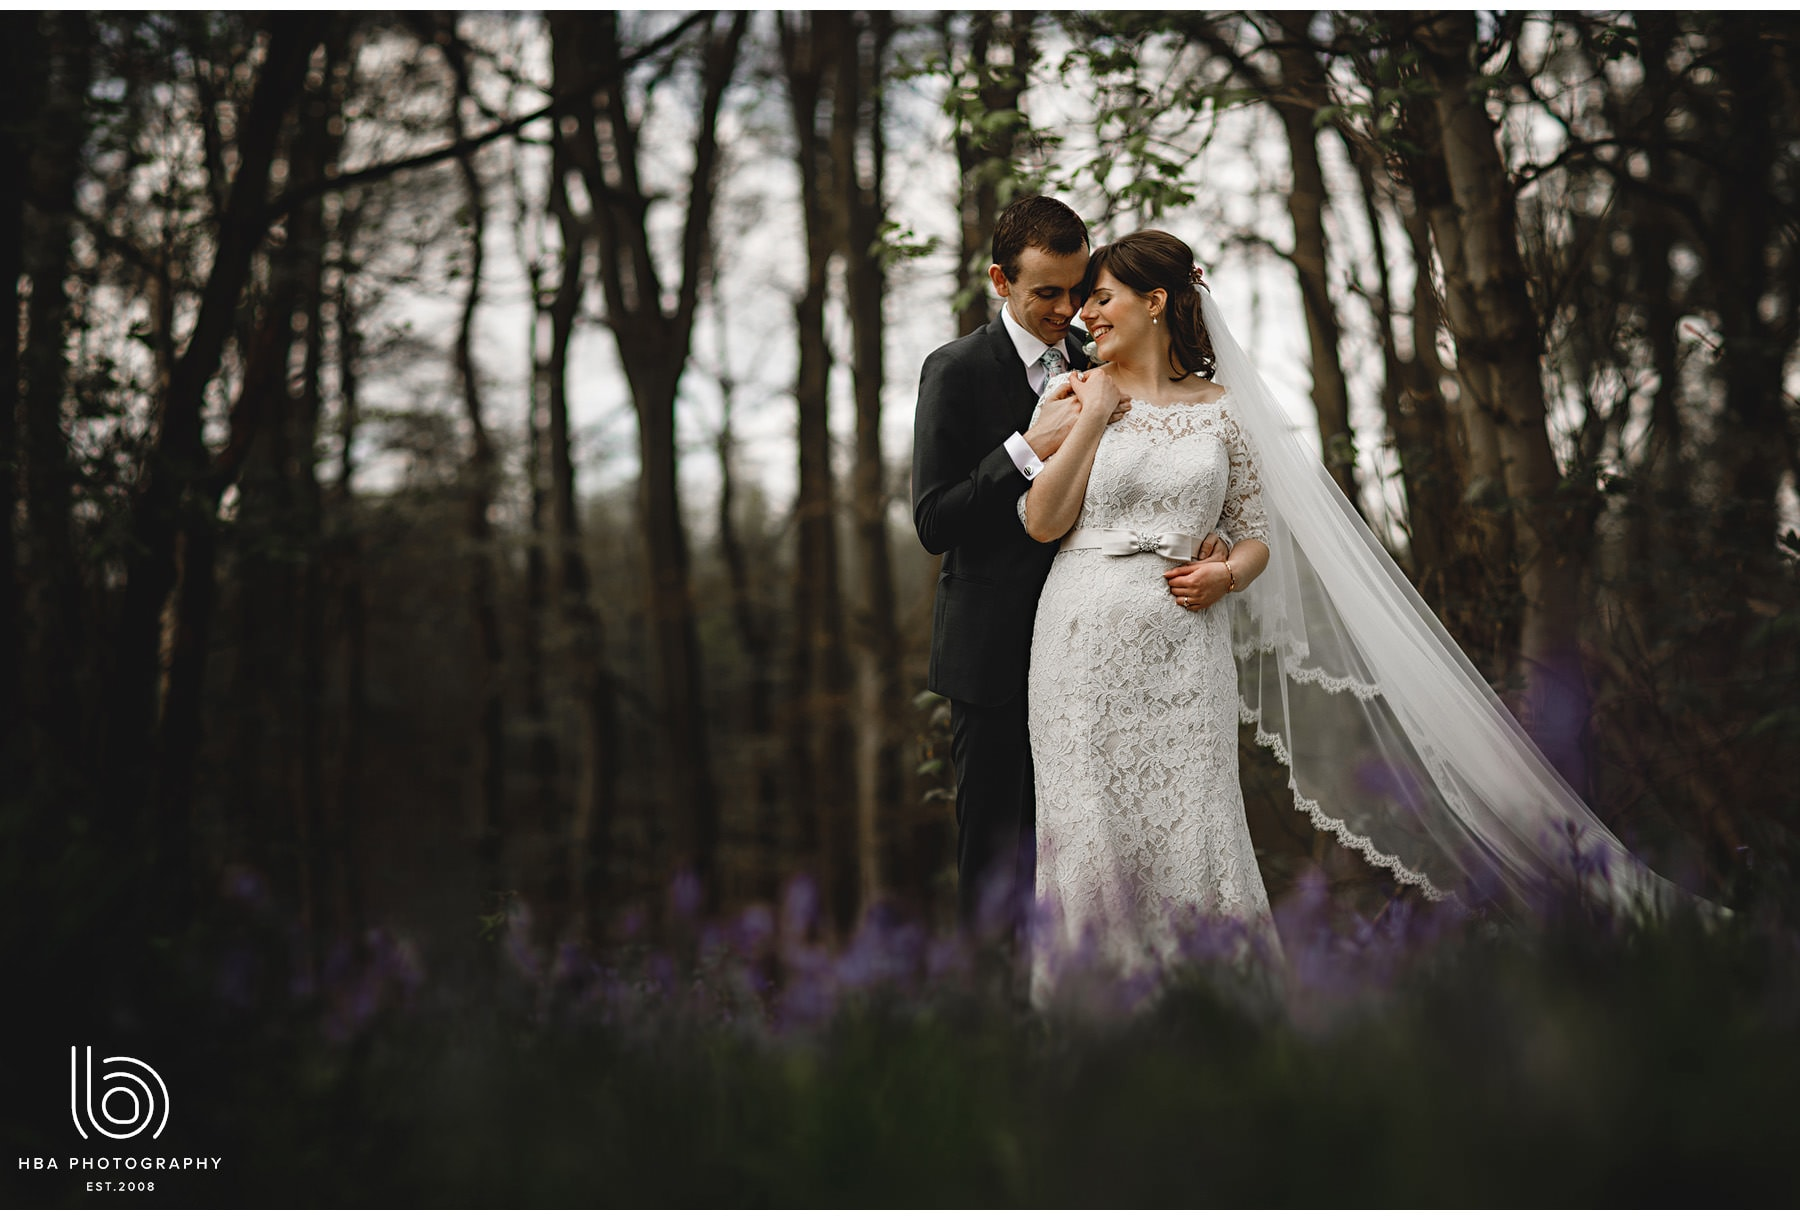 the bride & groom in the bluebells